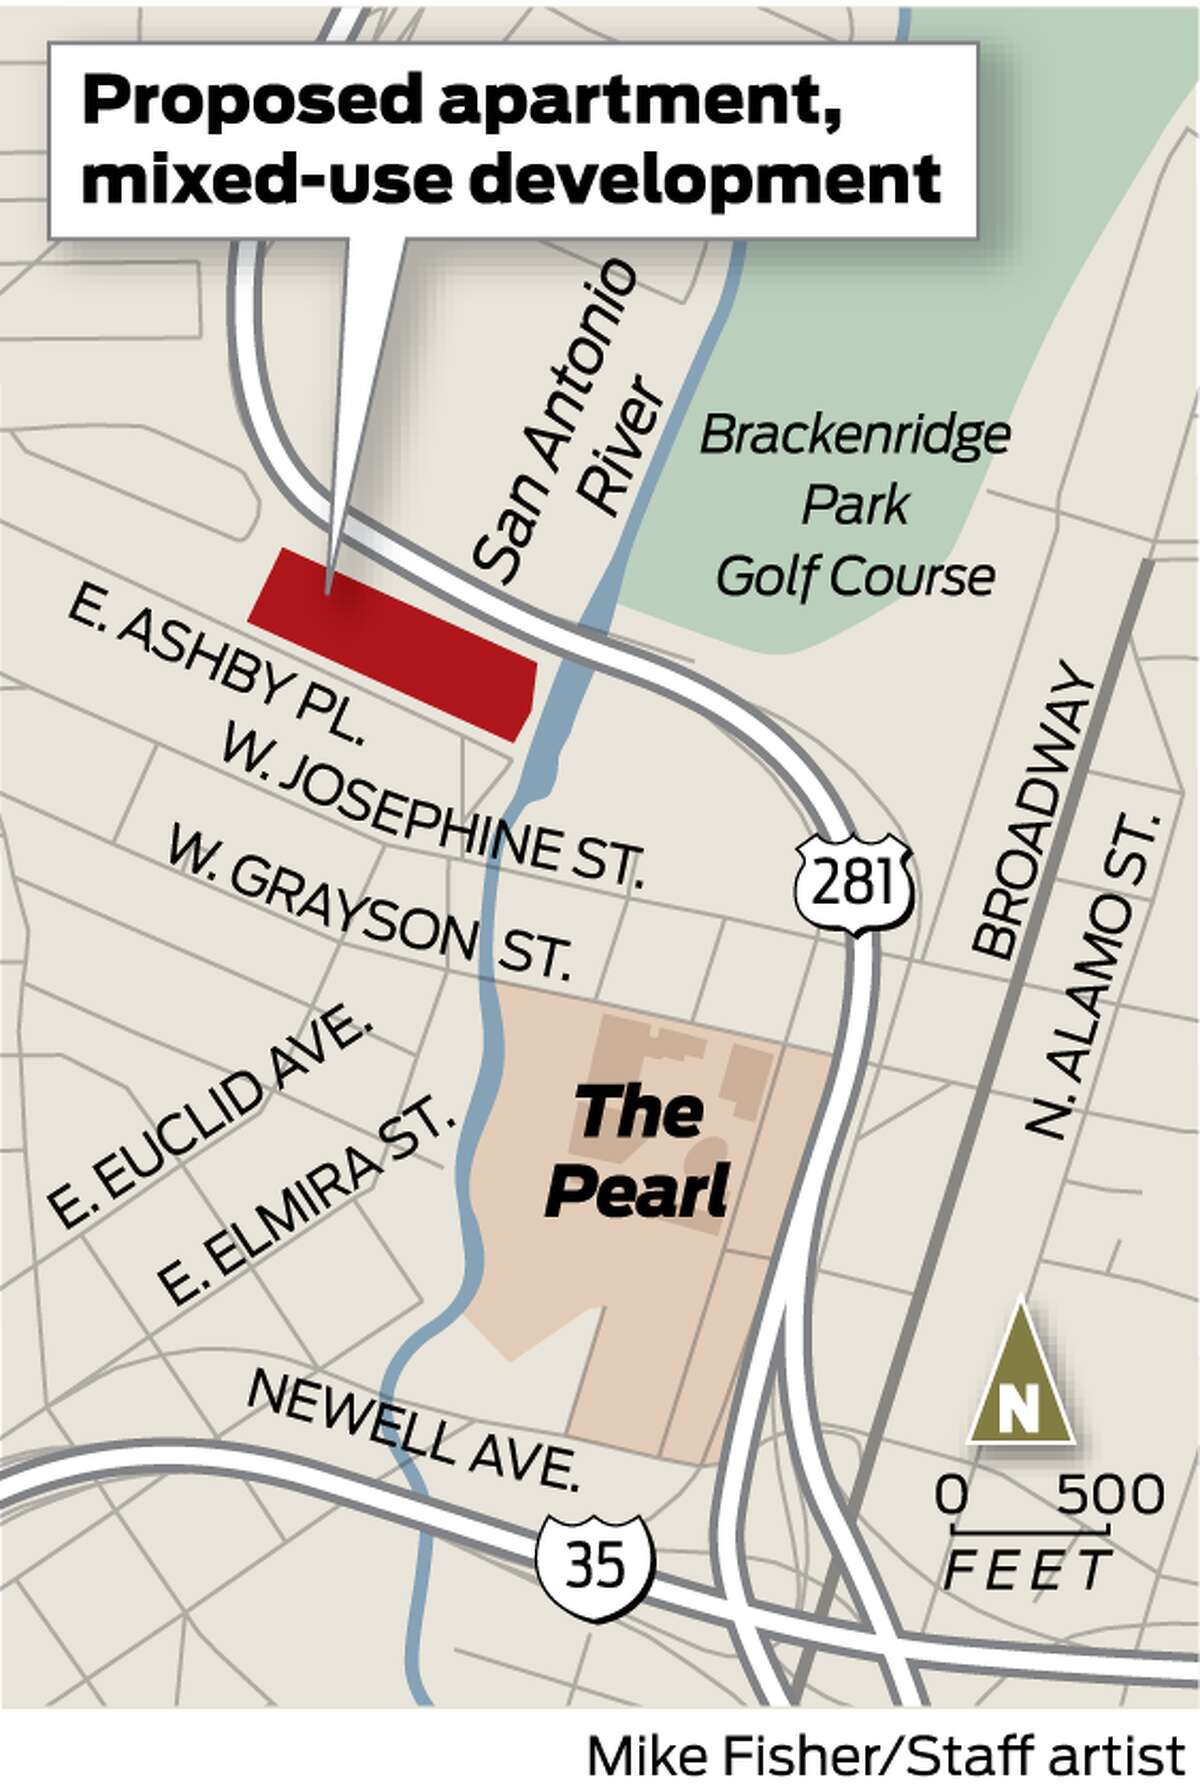 A pair of developers plan to renovate a self-storage facility on the San Antonio River into a mixed-use development that includes apartments, offices and retail.